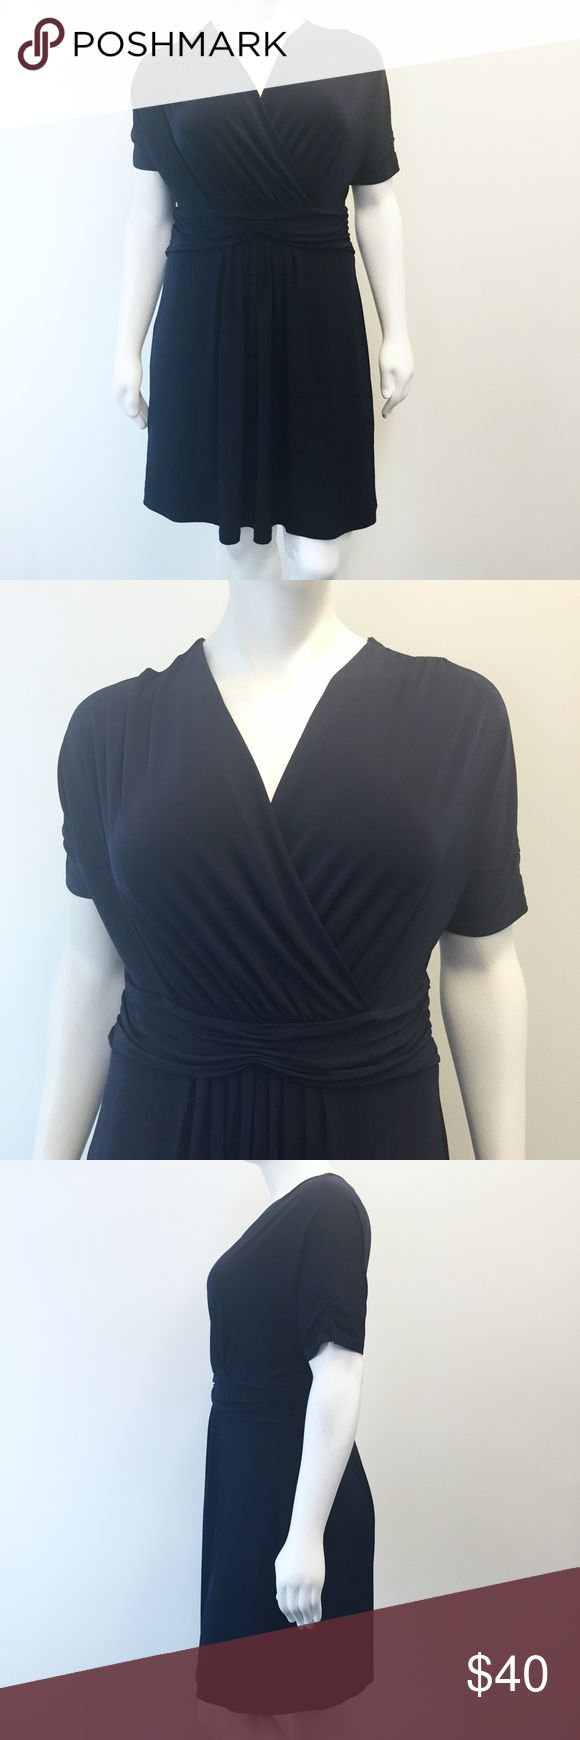 """Eloquii Navy Blue Occasion Dress Beautiful navy blue occasion dress from Eloquii! Surplice neckline with an empire waist. Dolman sleeves. Front and back pleats. In perfect condition. Smoke and pet free home. Measurements taken laid flat. 23"""" armpit to armpit. 19"""" natural waist. 25"""" waist. 30"""" hips. 41"""" long shoulder to hem. Eloquii Dresses Midi"""